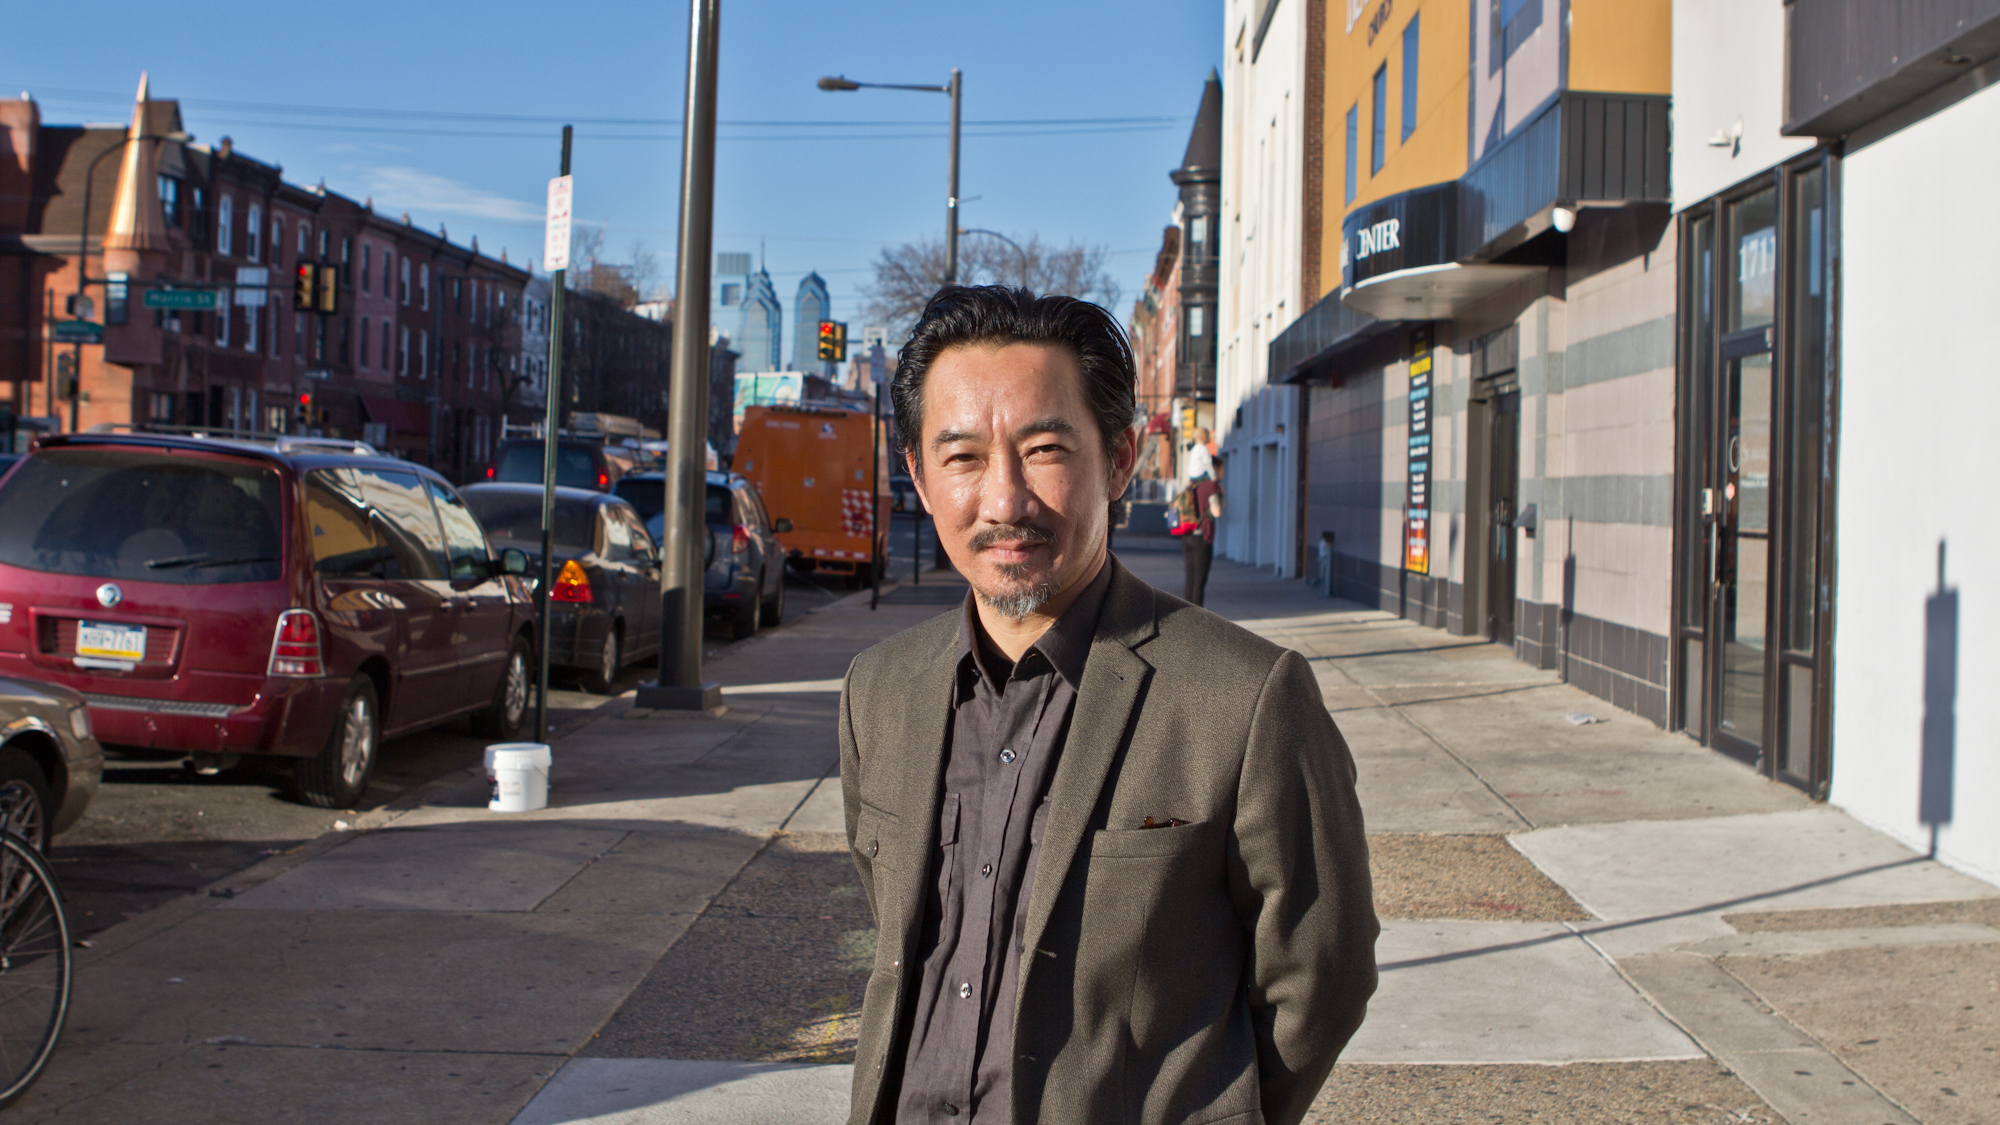 Thoai Nguyen is Chief Executive Officer of Southeast Asian Mutual Assistance Association Coalition. He came with his family to Philadelphia when he was 9 years-old. (Kimberly Paynter/WHYY)